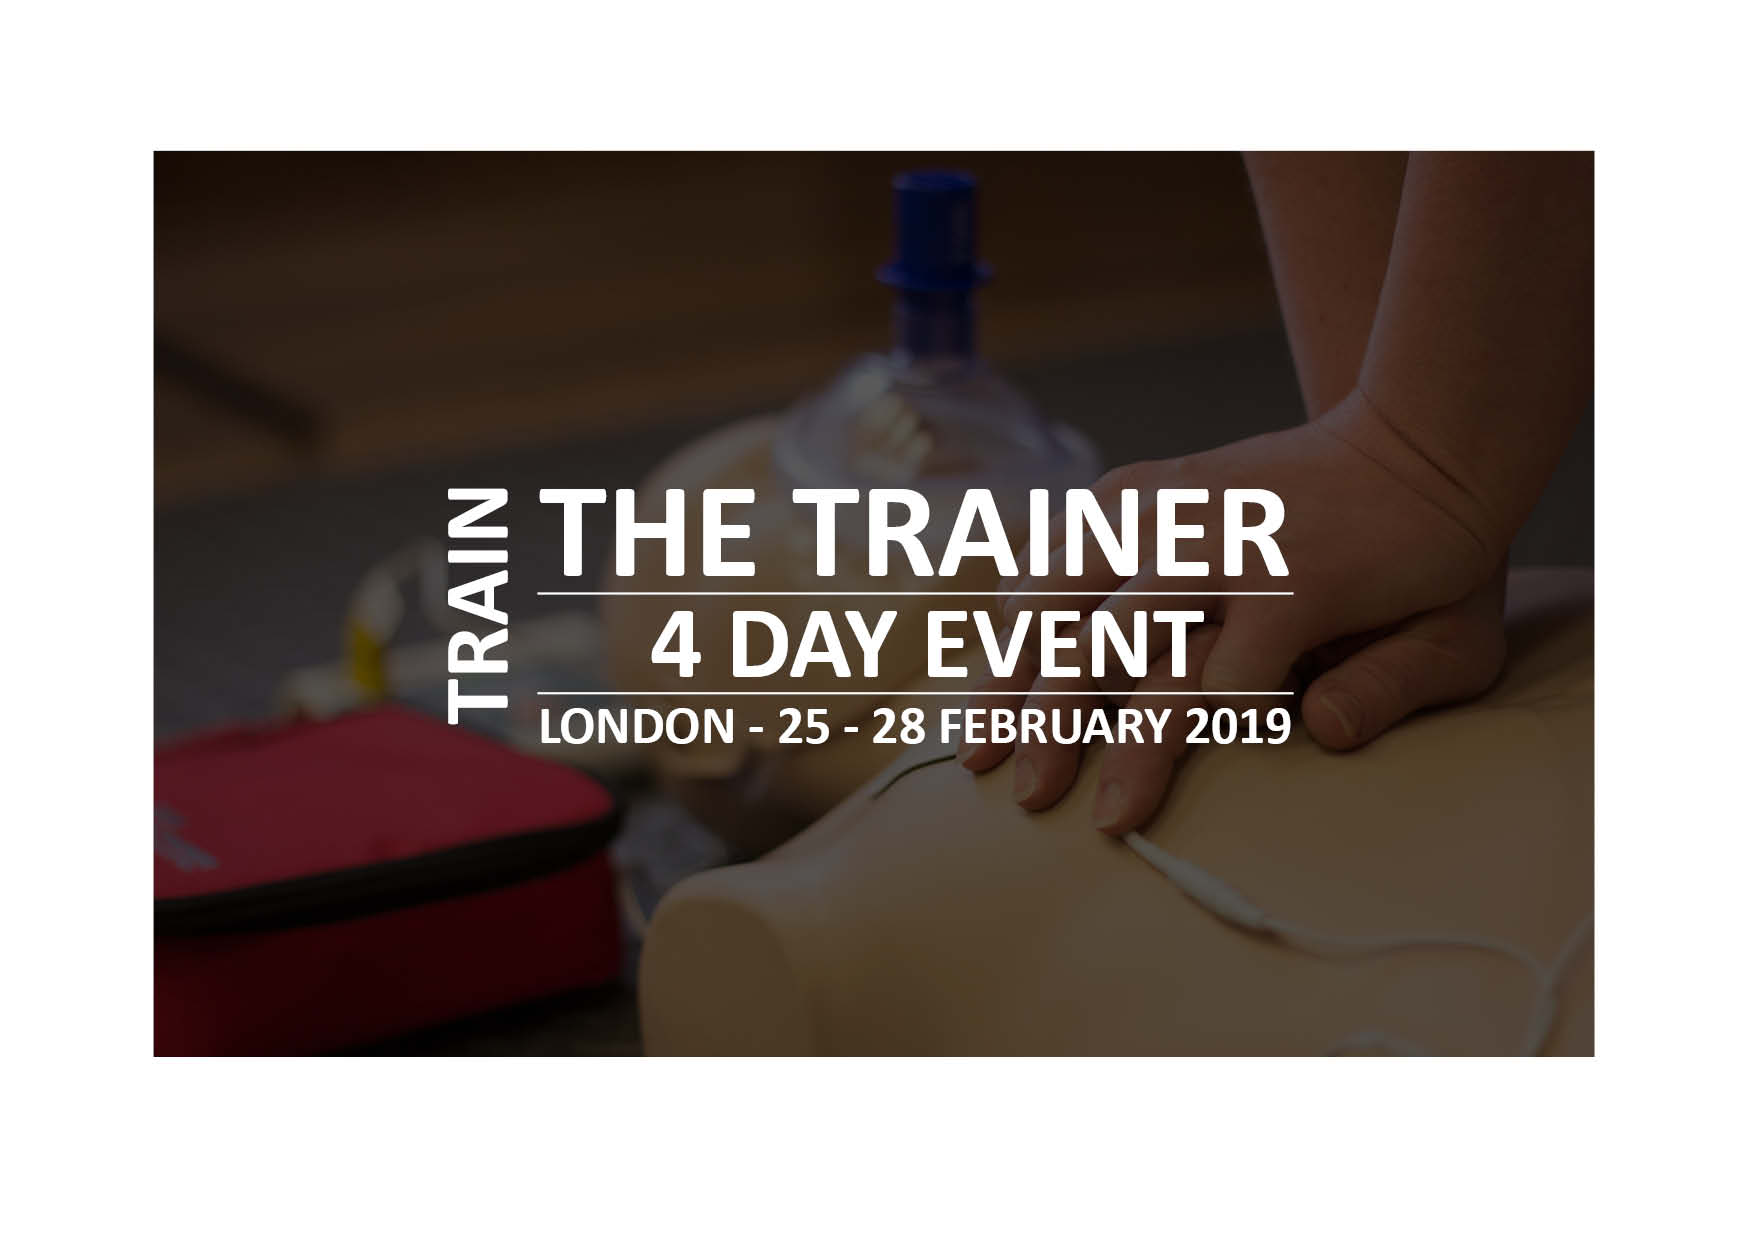 4 day Train the Trainer event in London (25th - 28th February 2019)